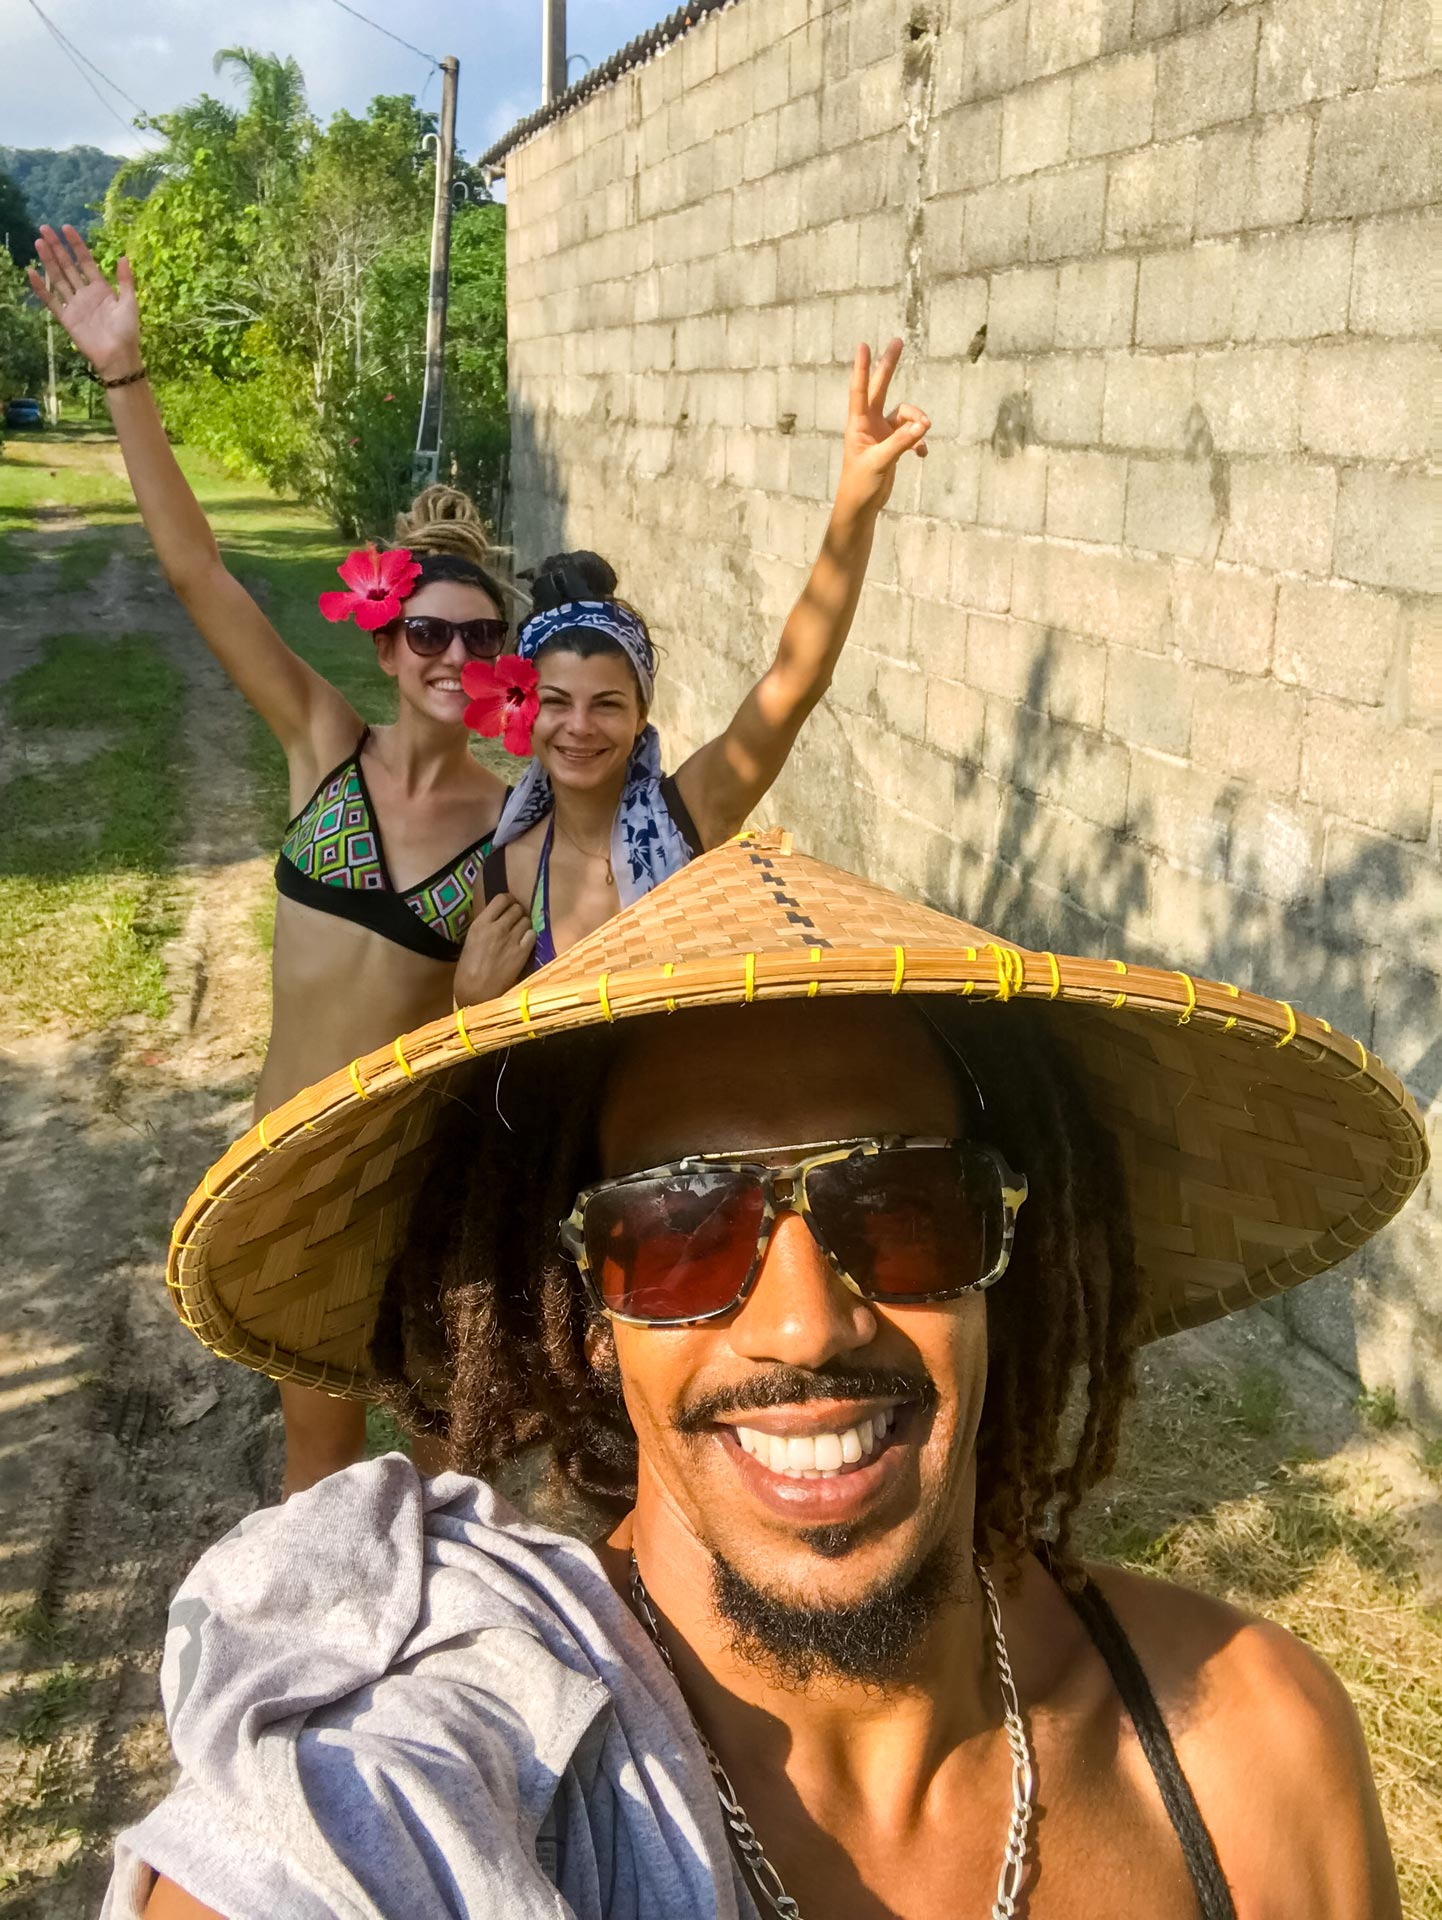 Rasta couple with local friend in Barra do Una, Brazil